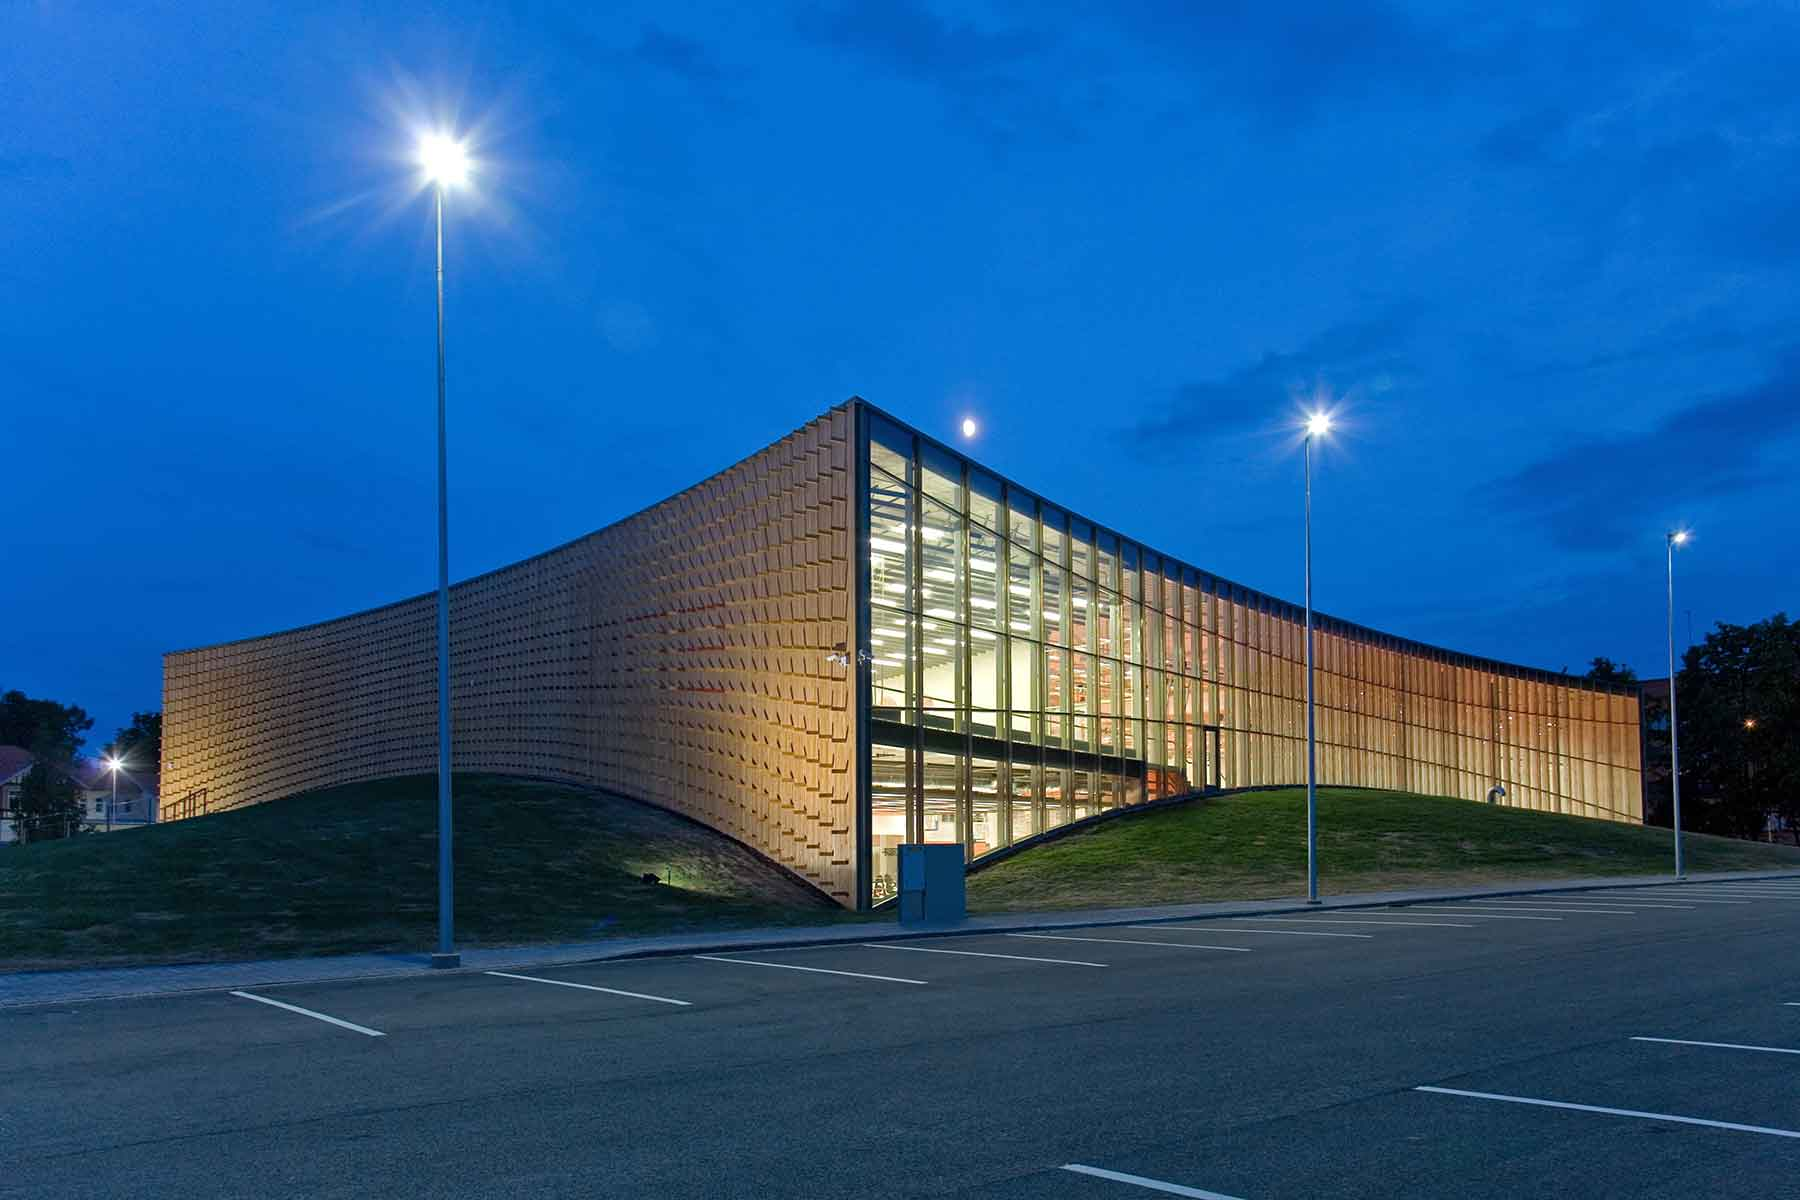 abstract-exterior-of-a-university-sports-club-Y63F9WF.jpg